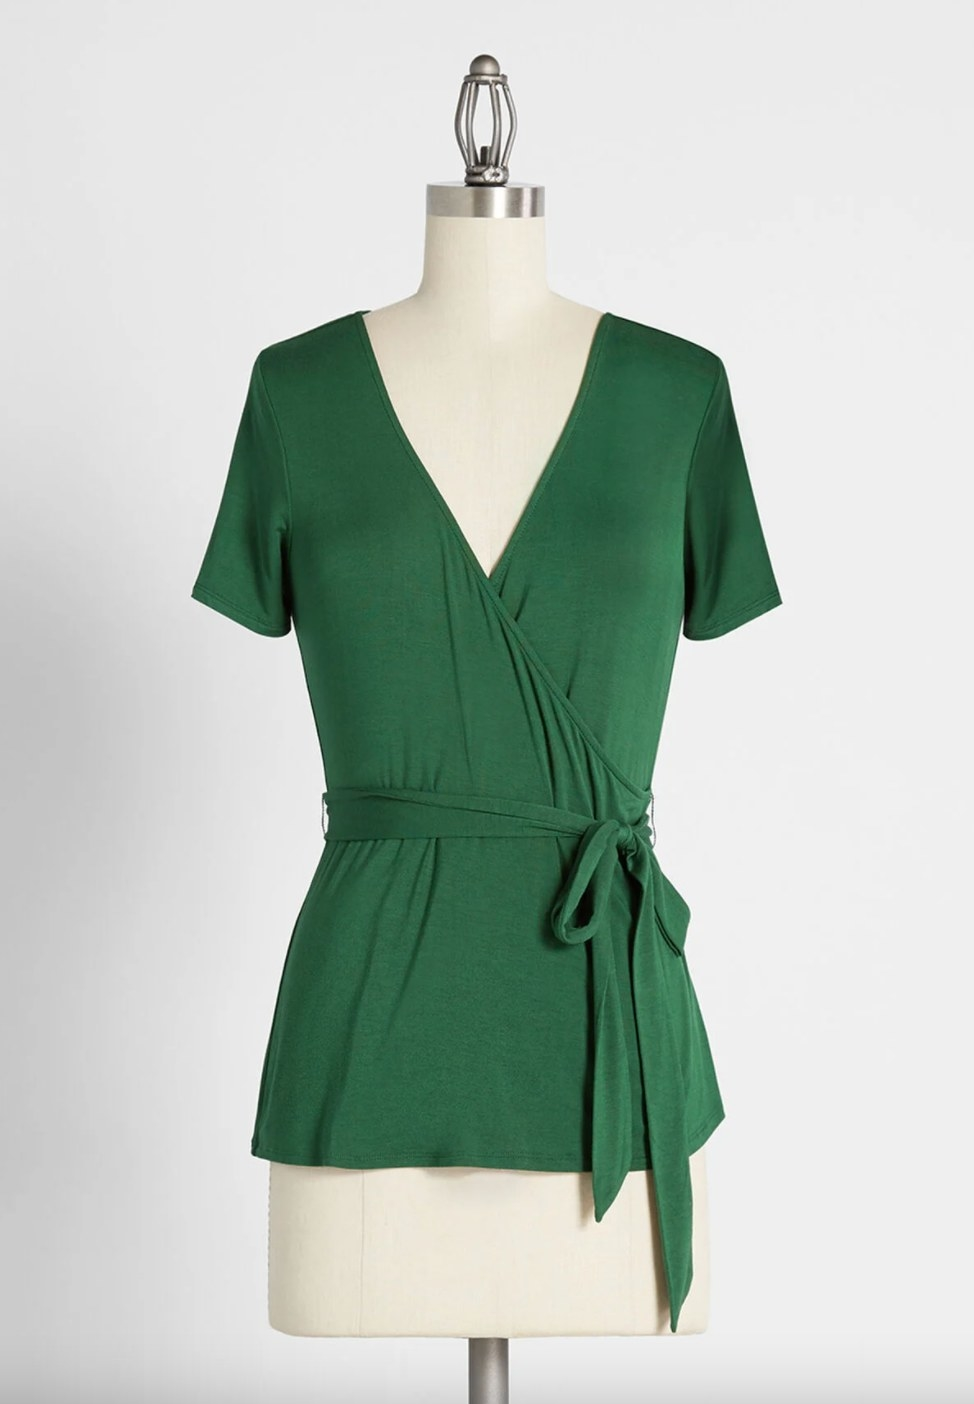 The wrap top in green